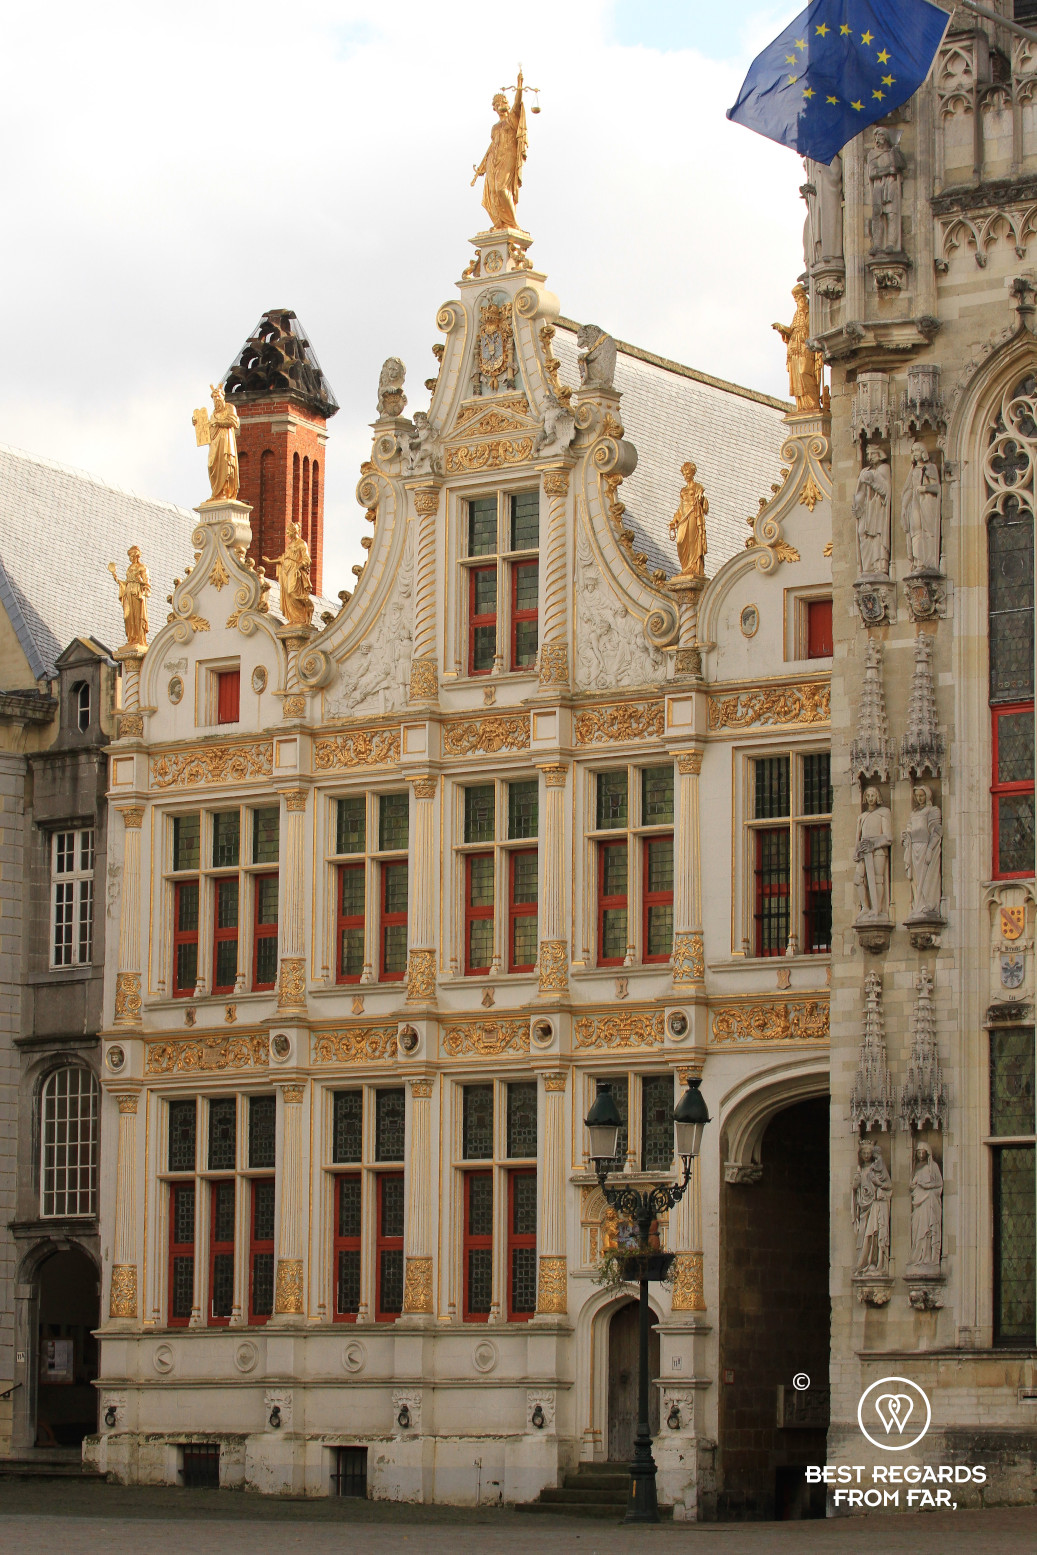 The Liberty of Bruges monument with its white and golden façade, Belgium